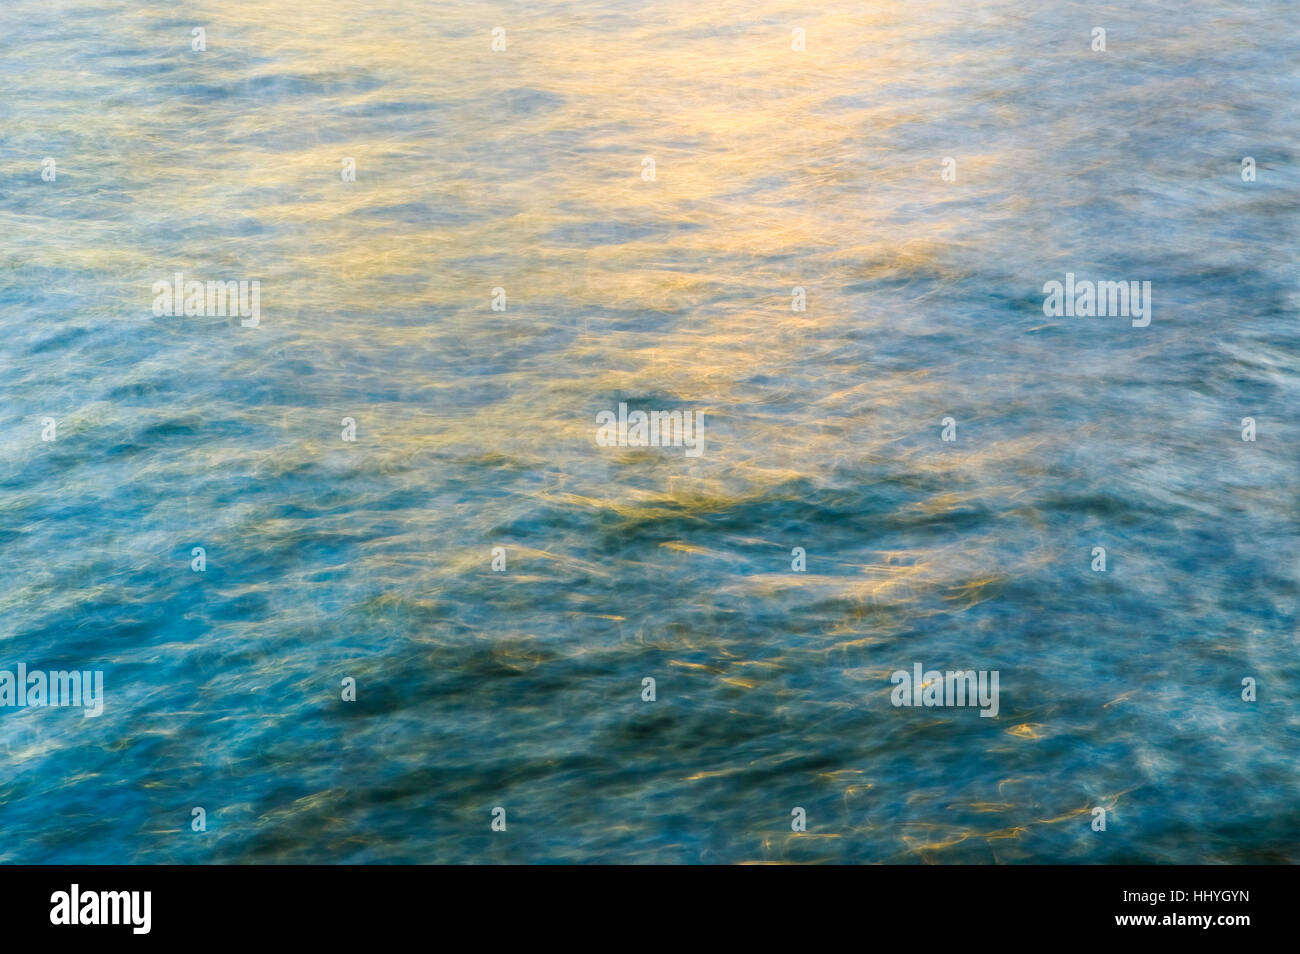 Abstract golden light reflecting on blue water - Stock Image